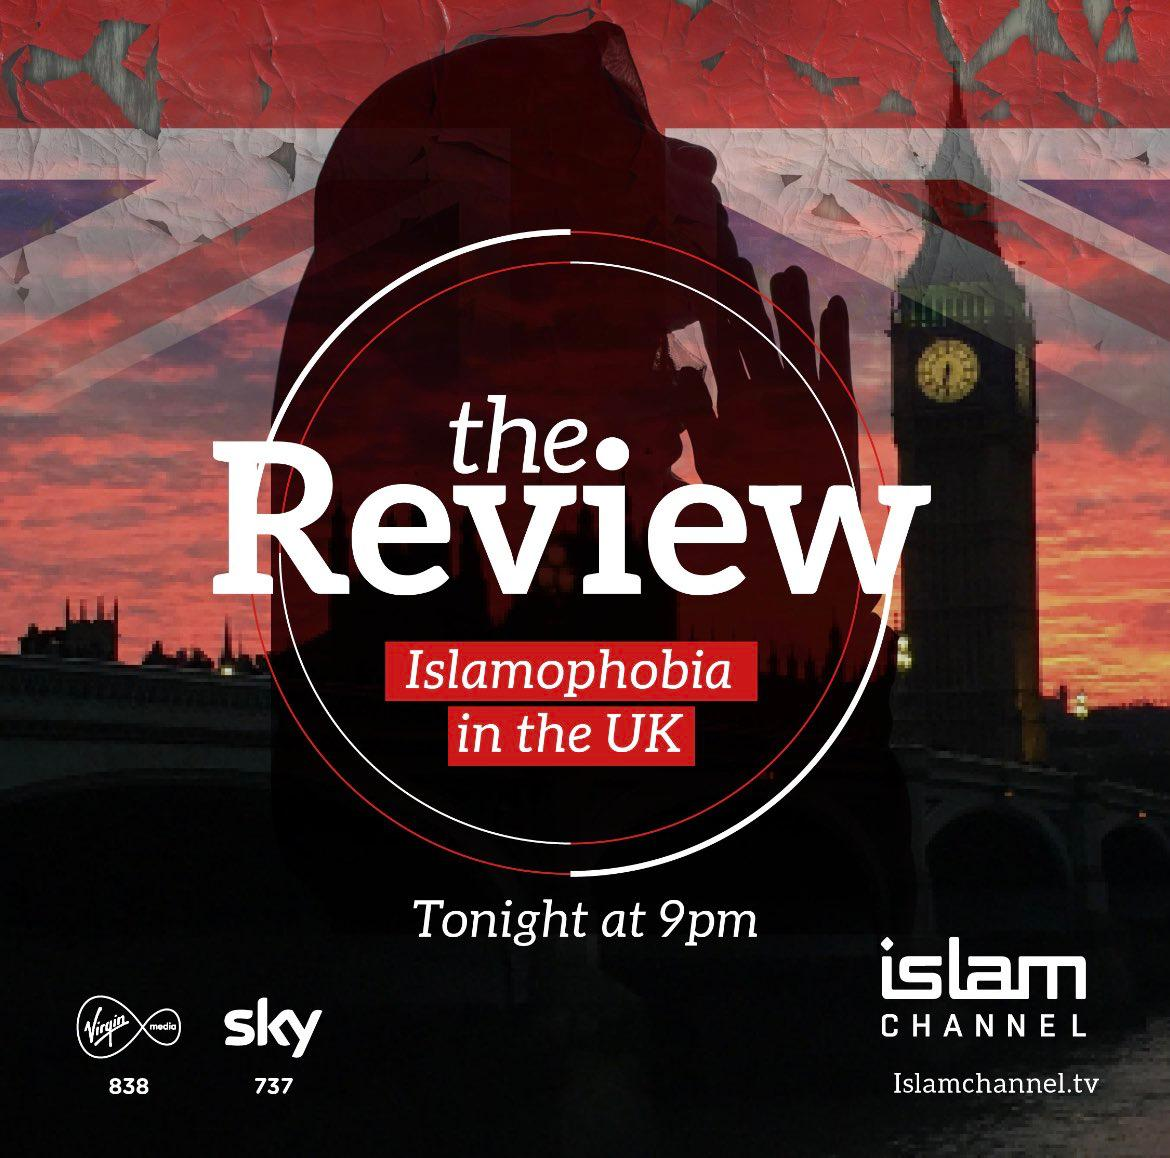 The Review show: Islam Channel